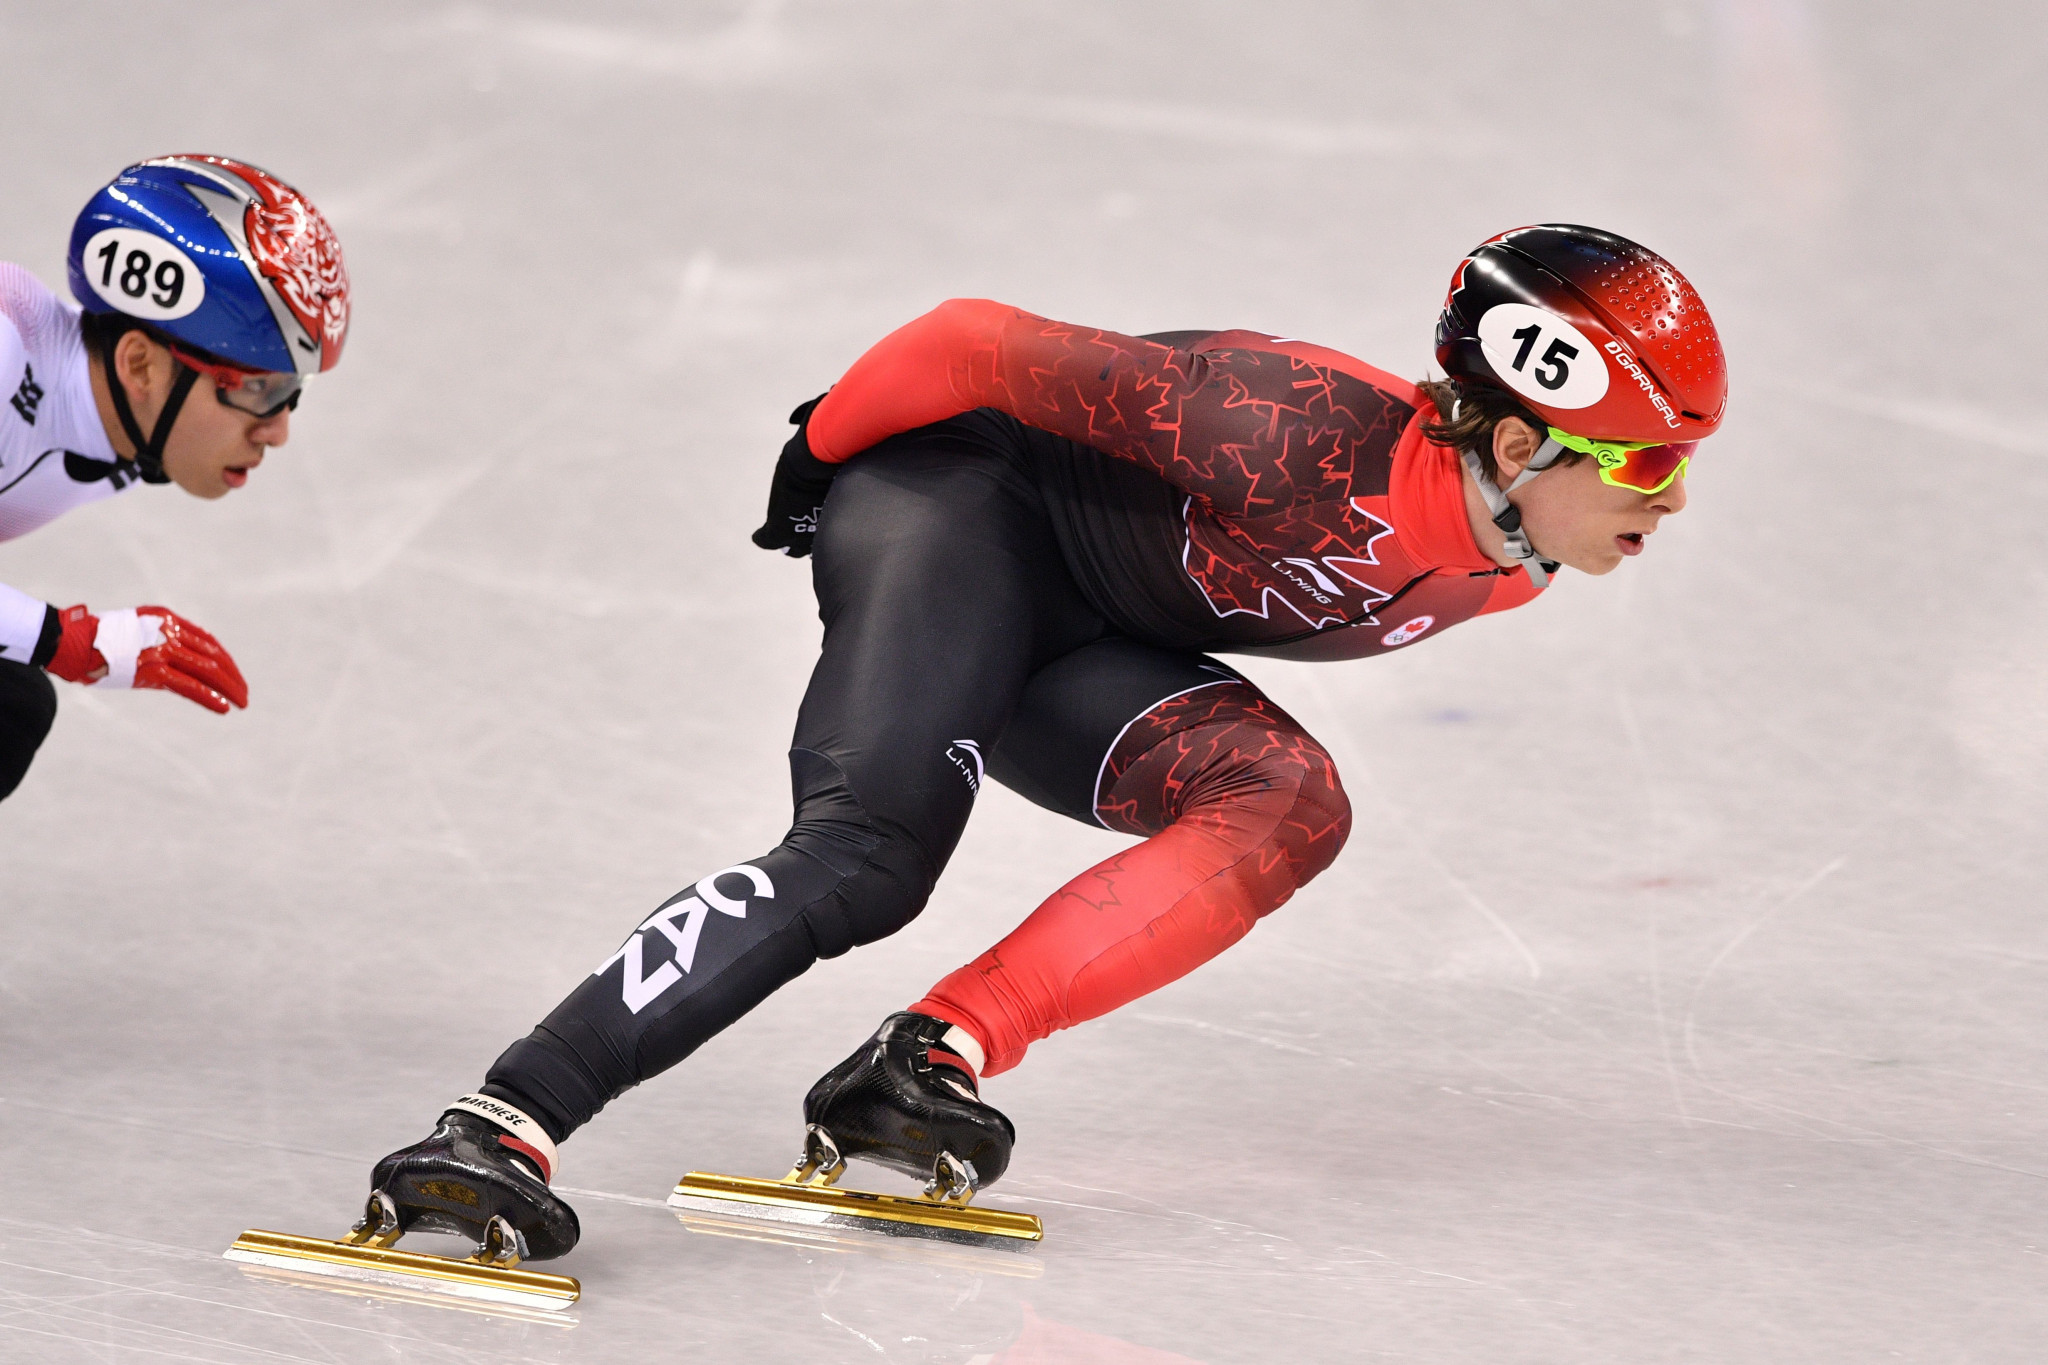 Double Olympic medallist Cournoyer announces short track retirement